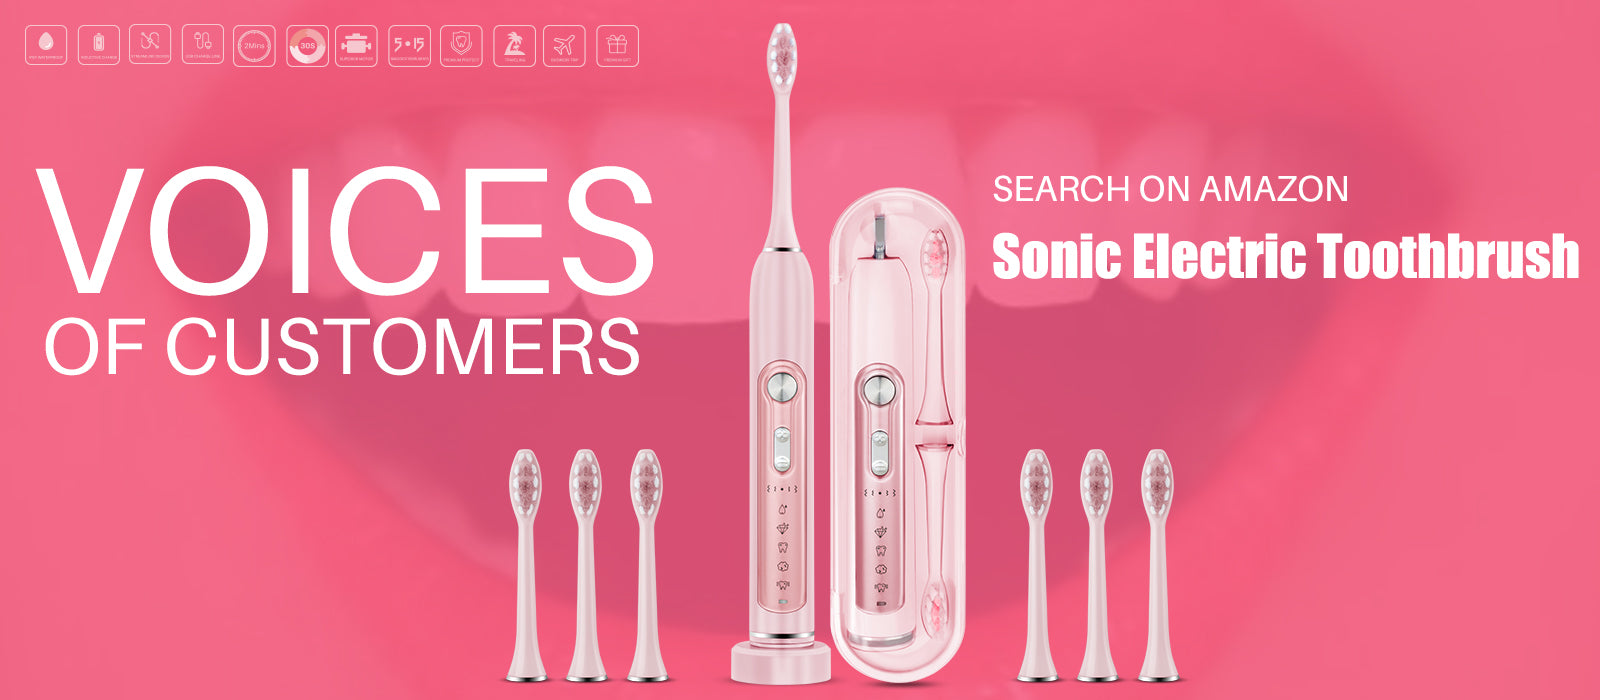 Electric-toothbrush-and-sonic-toothbrush-users-voices.jpg